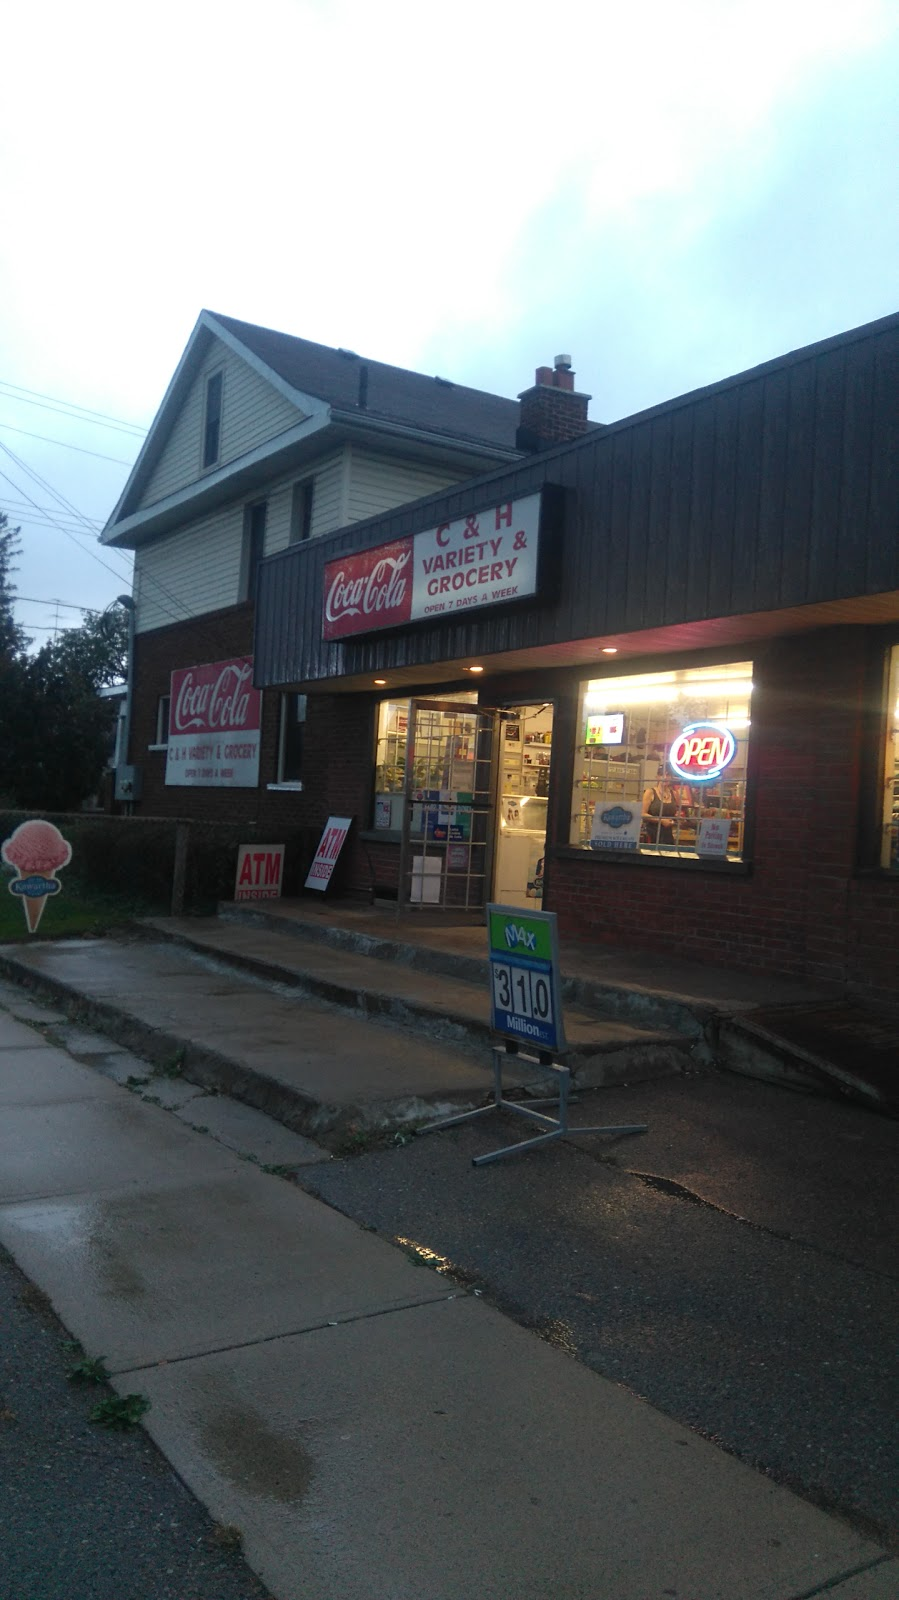 C & H Variety Store | store | 329 Adelaide Ave E, Oshawa, ON L1G 1Z9, Canada | 9057239803 OR +1 905-723-9803